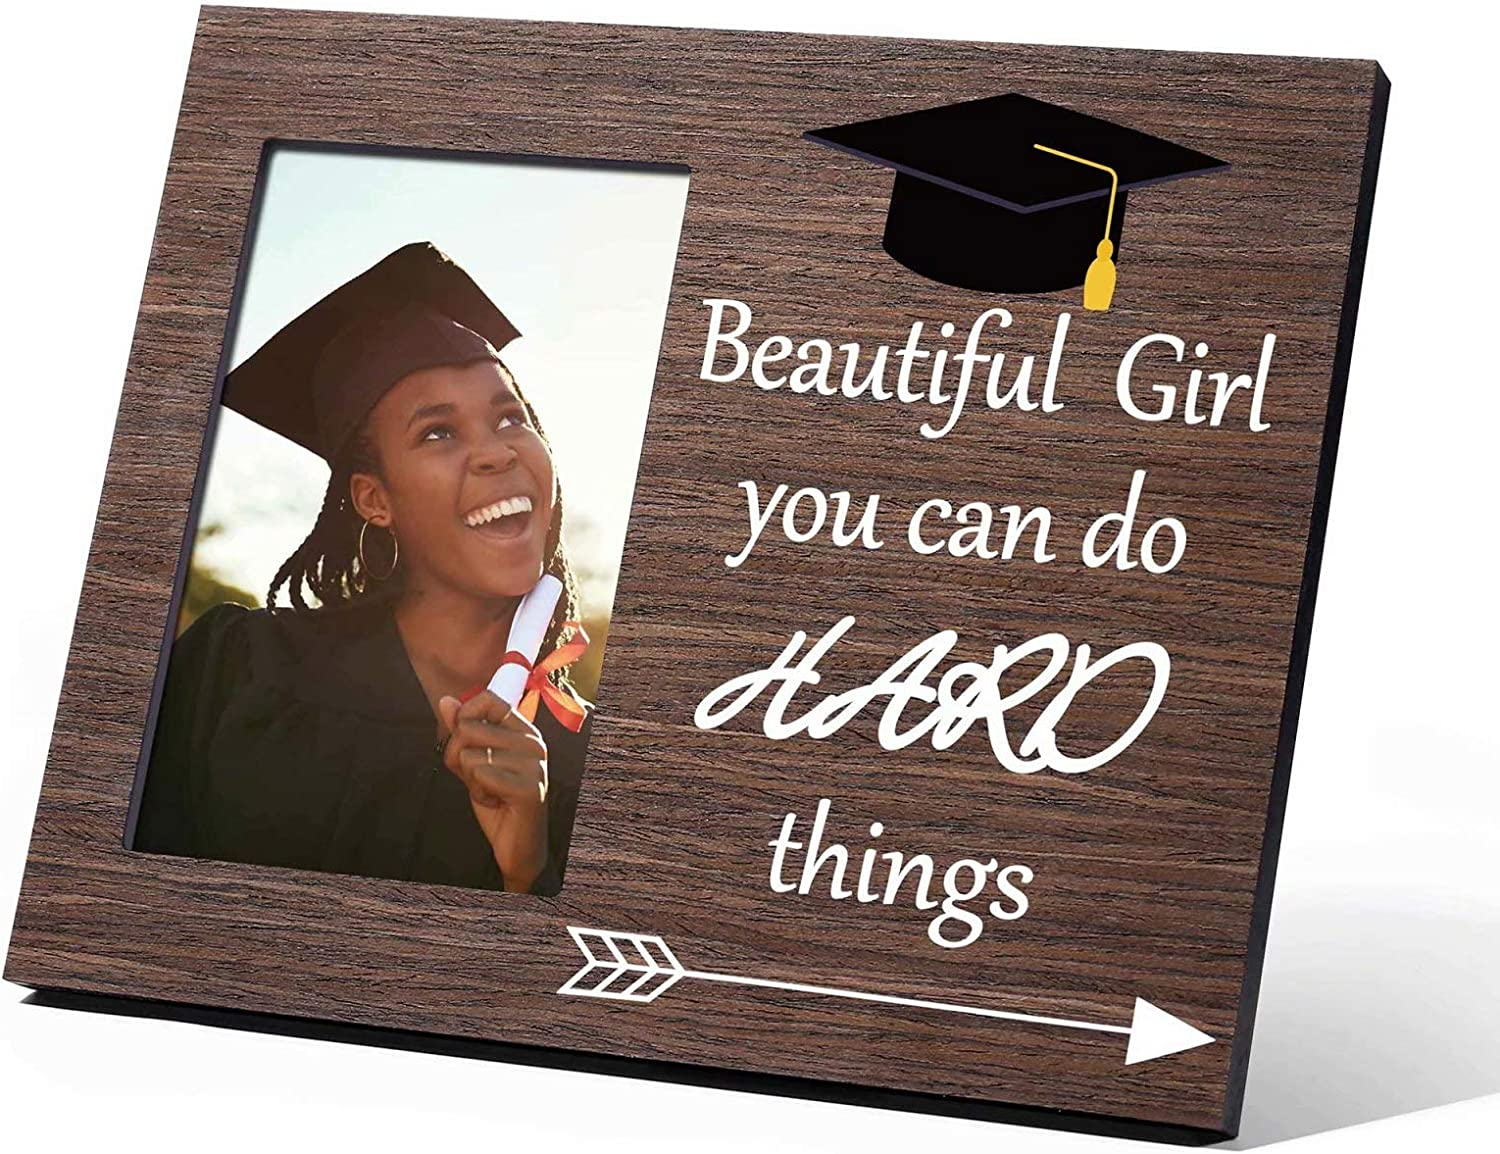 2021 Graduation Gifts for Her, Beautiful Girl You Can Do hard things Class of 2021 Grad Present Inspirational High School College Graduation Gifts for Women Teen Girls, Picture Frame 4x6 Wood